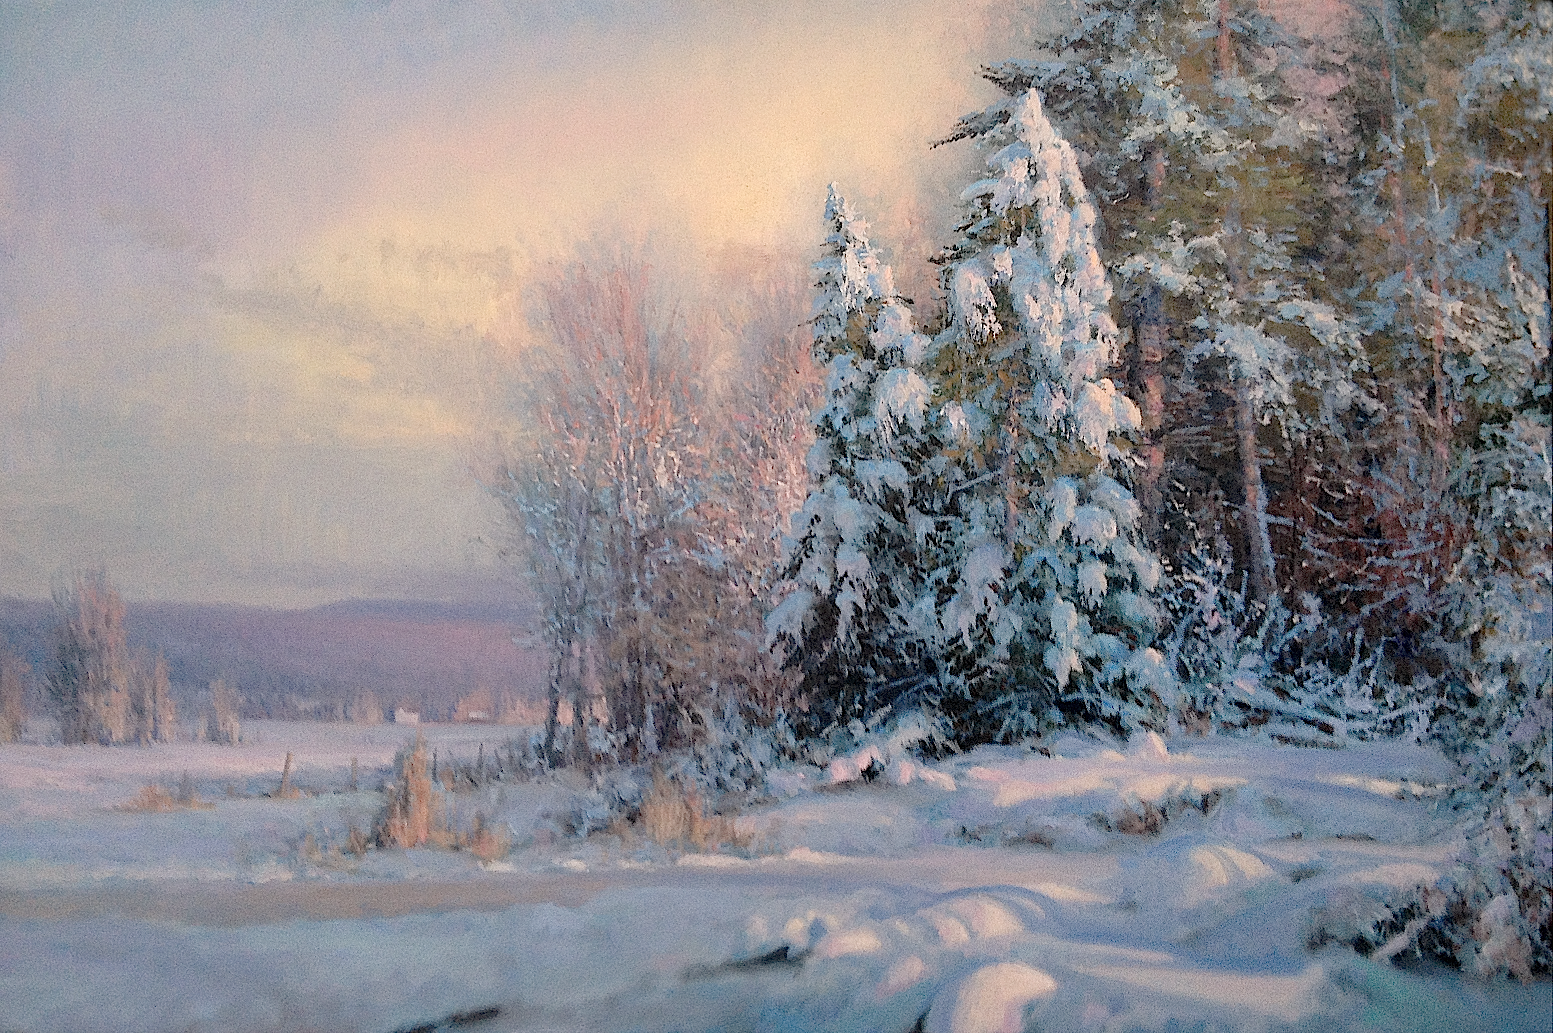 """Winter's Elegance"" by M. Godfrey"